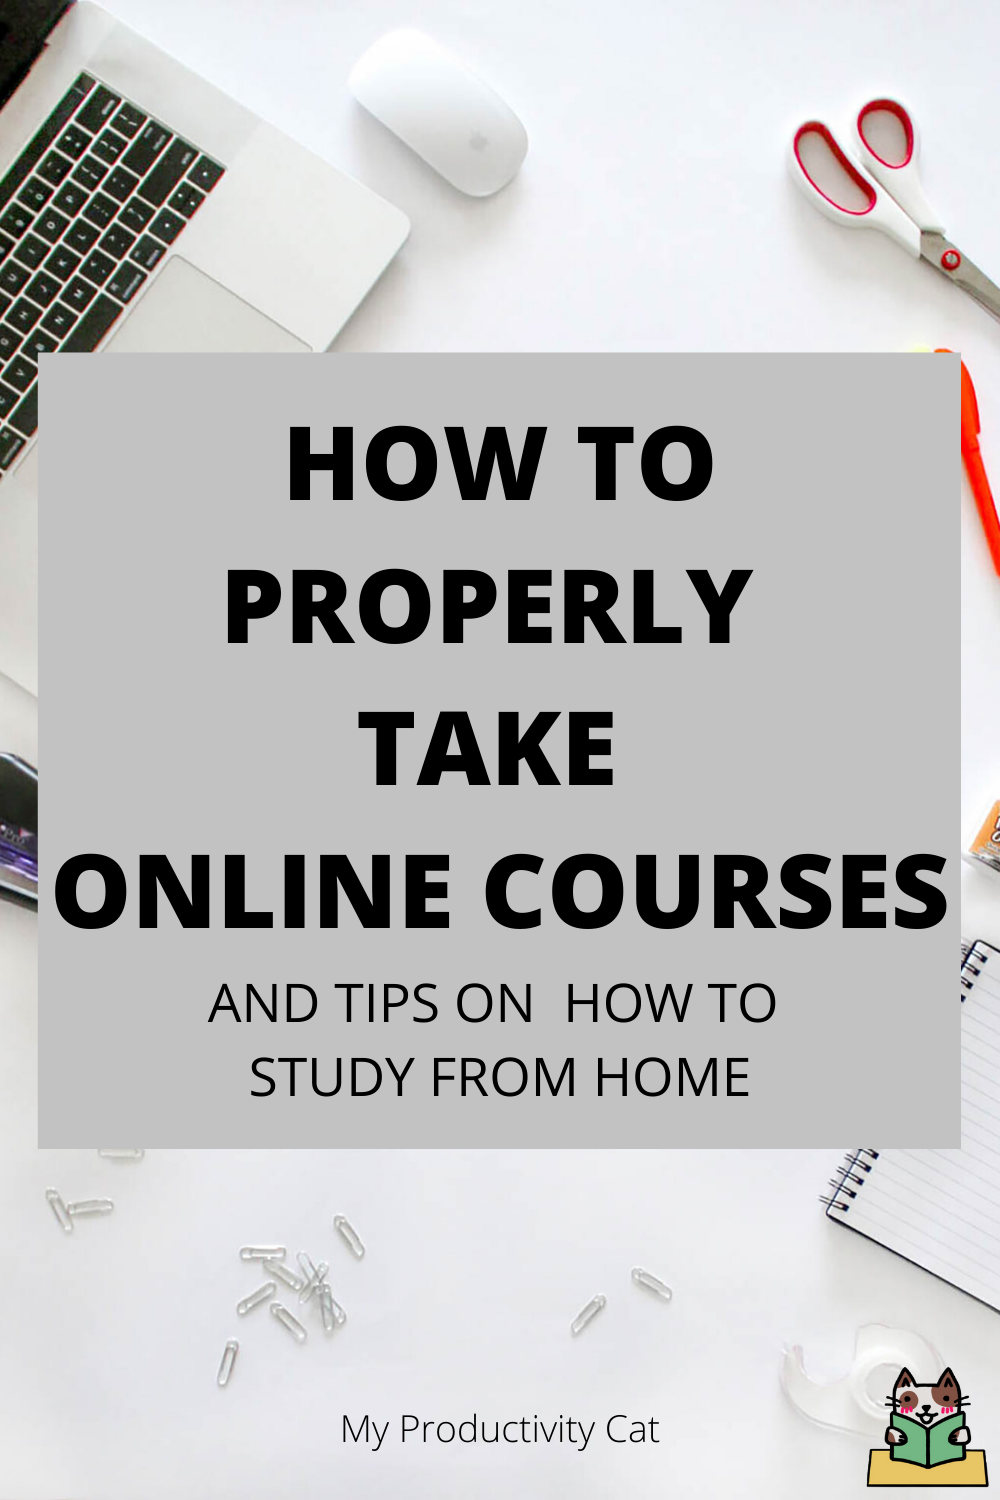 Helpful tips for students who are attending school through online classes or studying from home. #onlineclass #school #studying #productivity